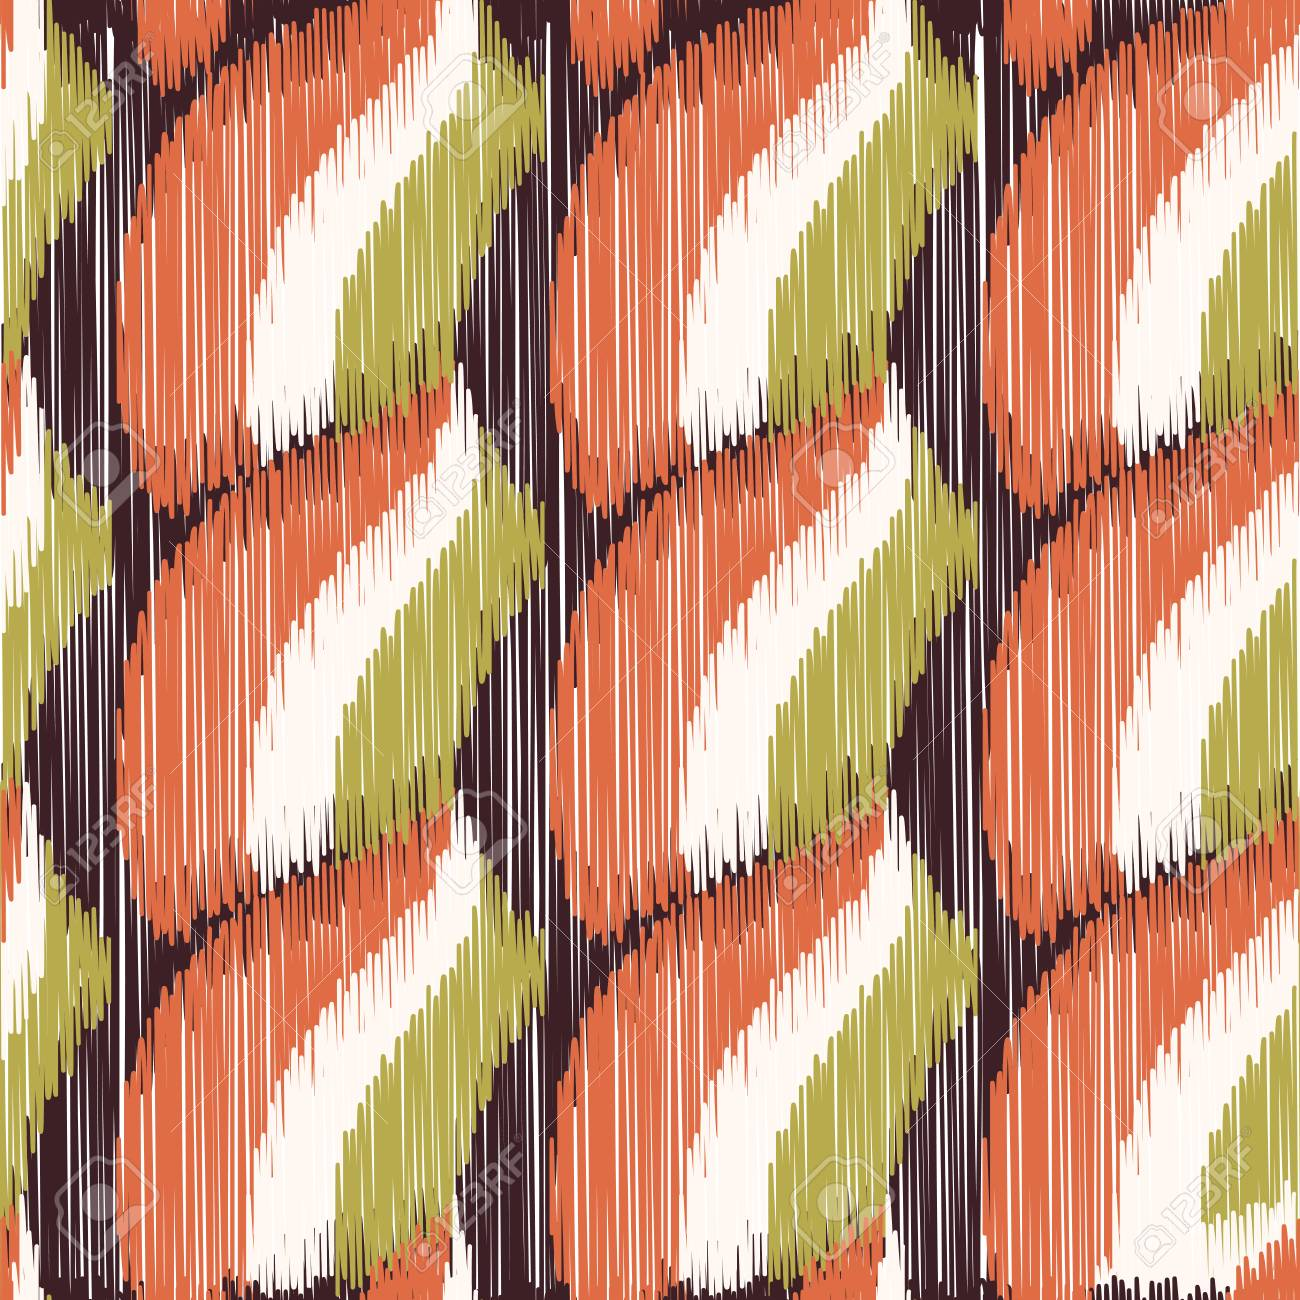 Seamless Ikat Pattern. Abstract background for textile design, wallpaper, surface textures, wrapping paper. - 121311885